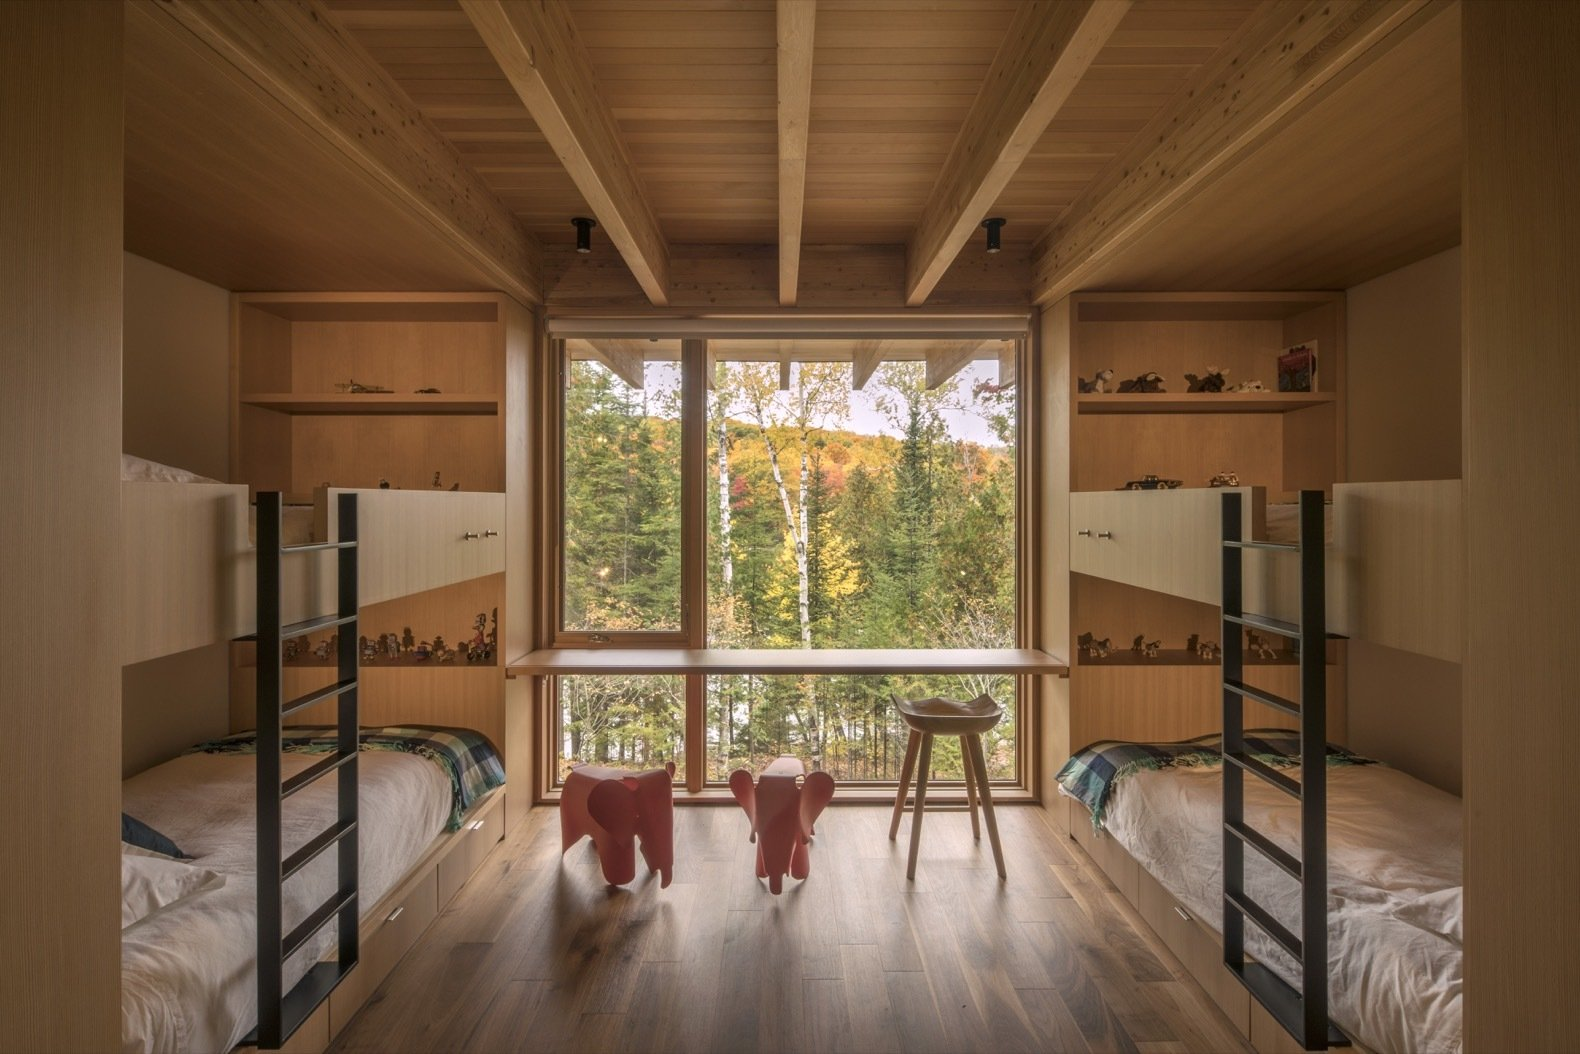 Kids Room, Chair, Bunks, Shelves, Bedroom Room Type, Desk, Neutral Gender, and Medium Hardwood Floor Oversized sliding doors open to the bunk room with floor-to-ceiling windows overlooking the serene lake.    Photo 8 of 16 in This Award-Winning Cabin Is a Relaxing Antidote to City Living